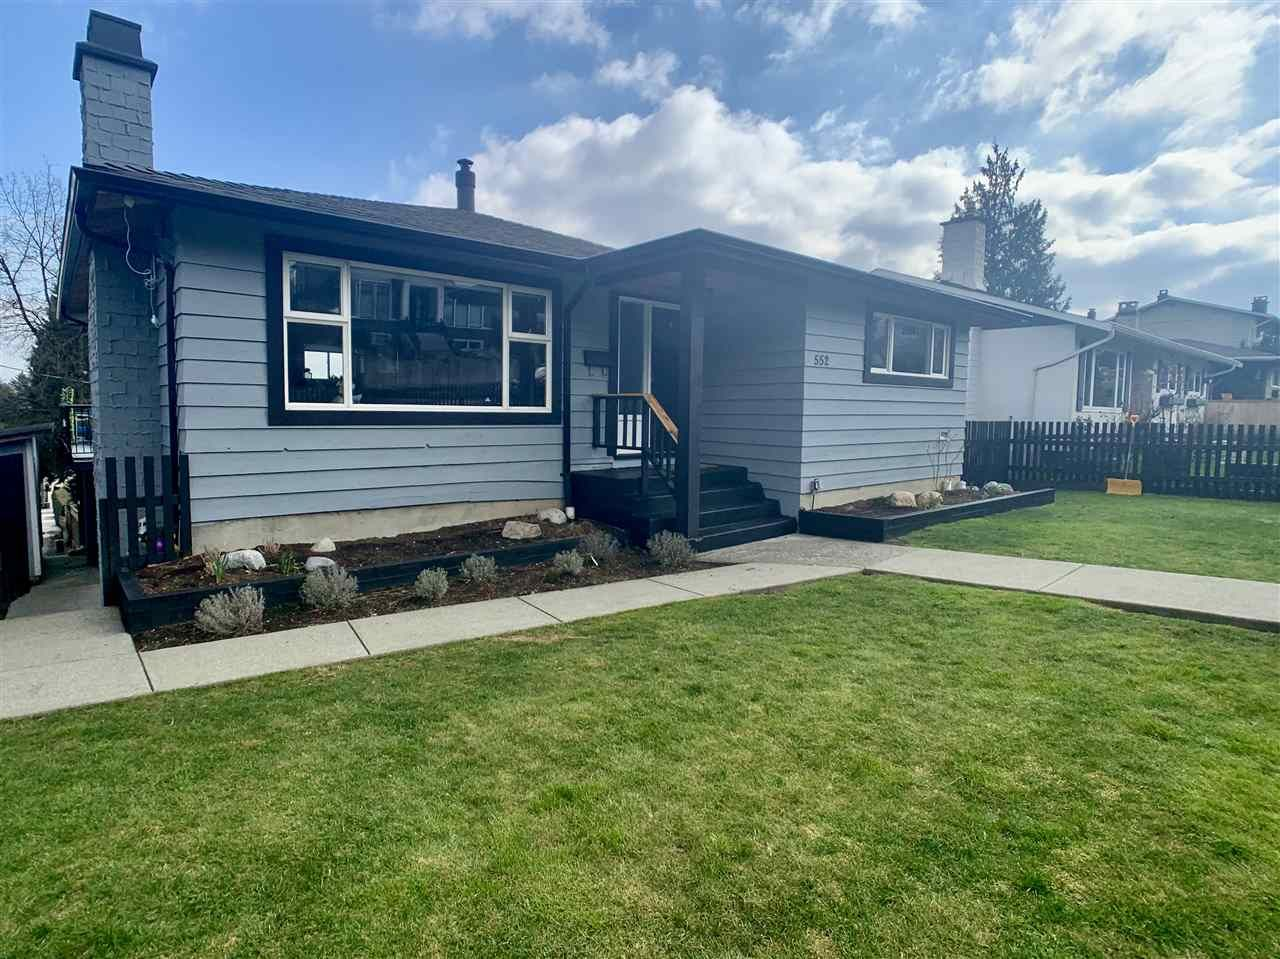 Main Photo: 552 GARFIELD STREET in New Westminster: The Heights NW House for sale : MLS®# R2554342